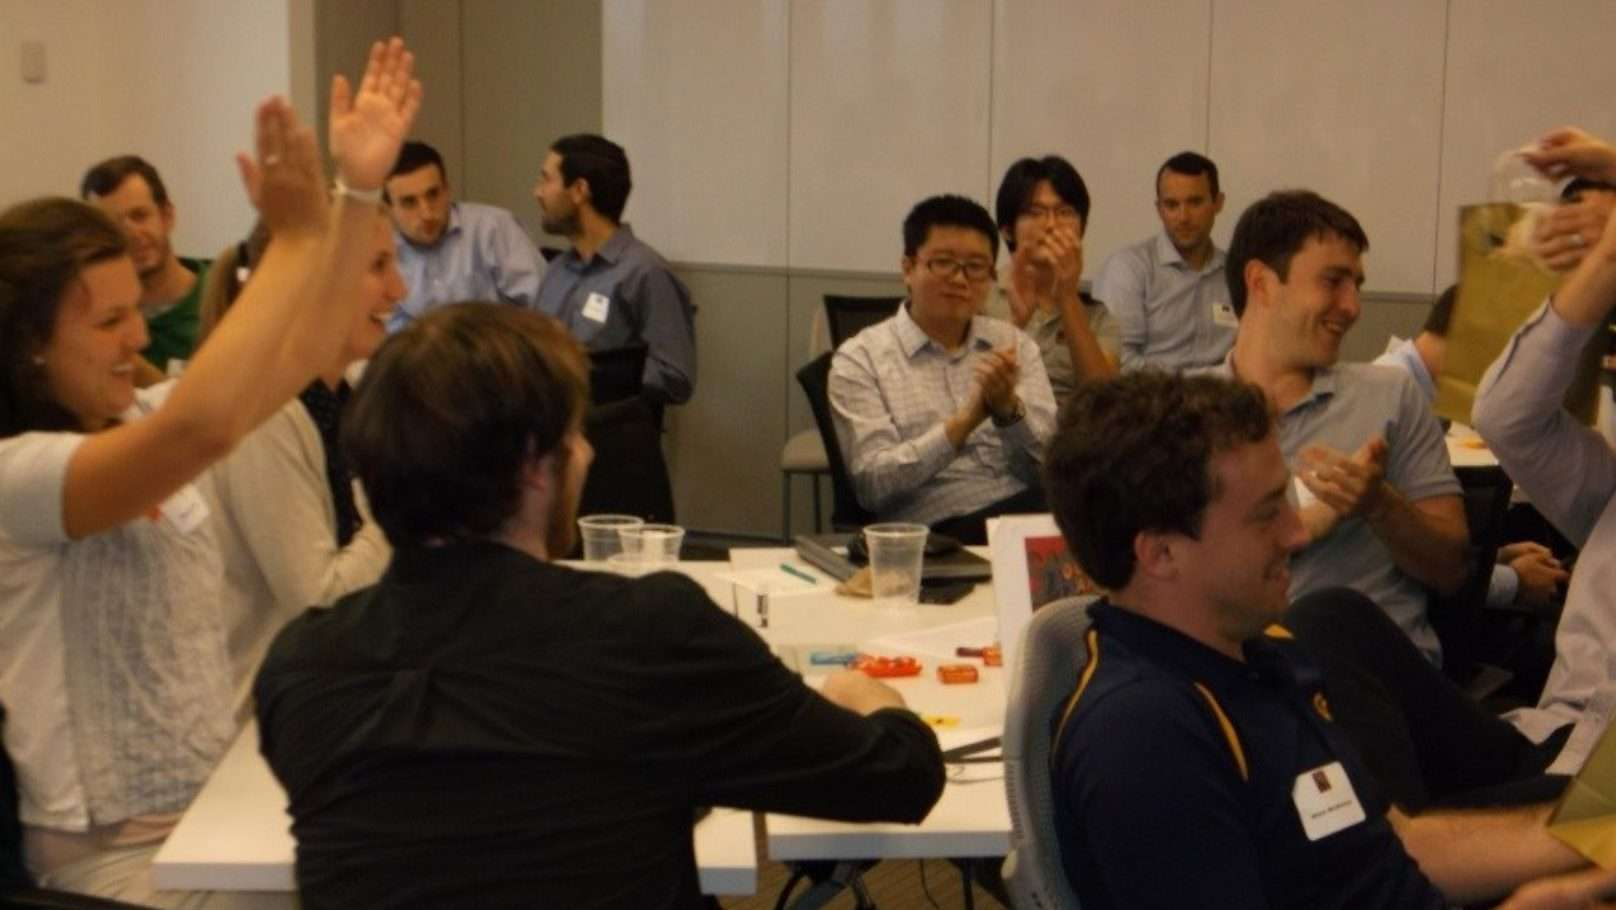 group clapping at an indoor corporate team building program